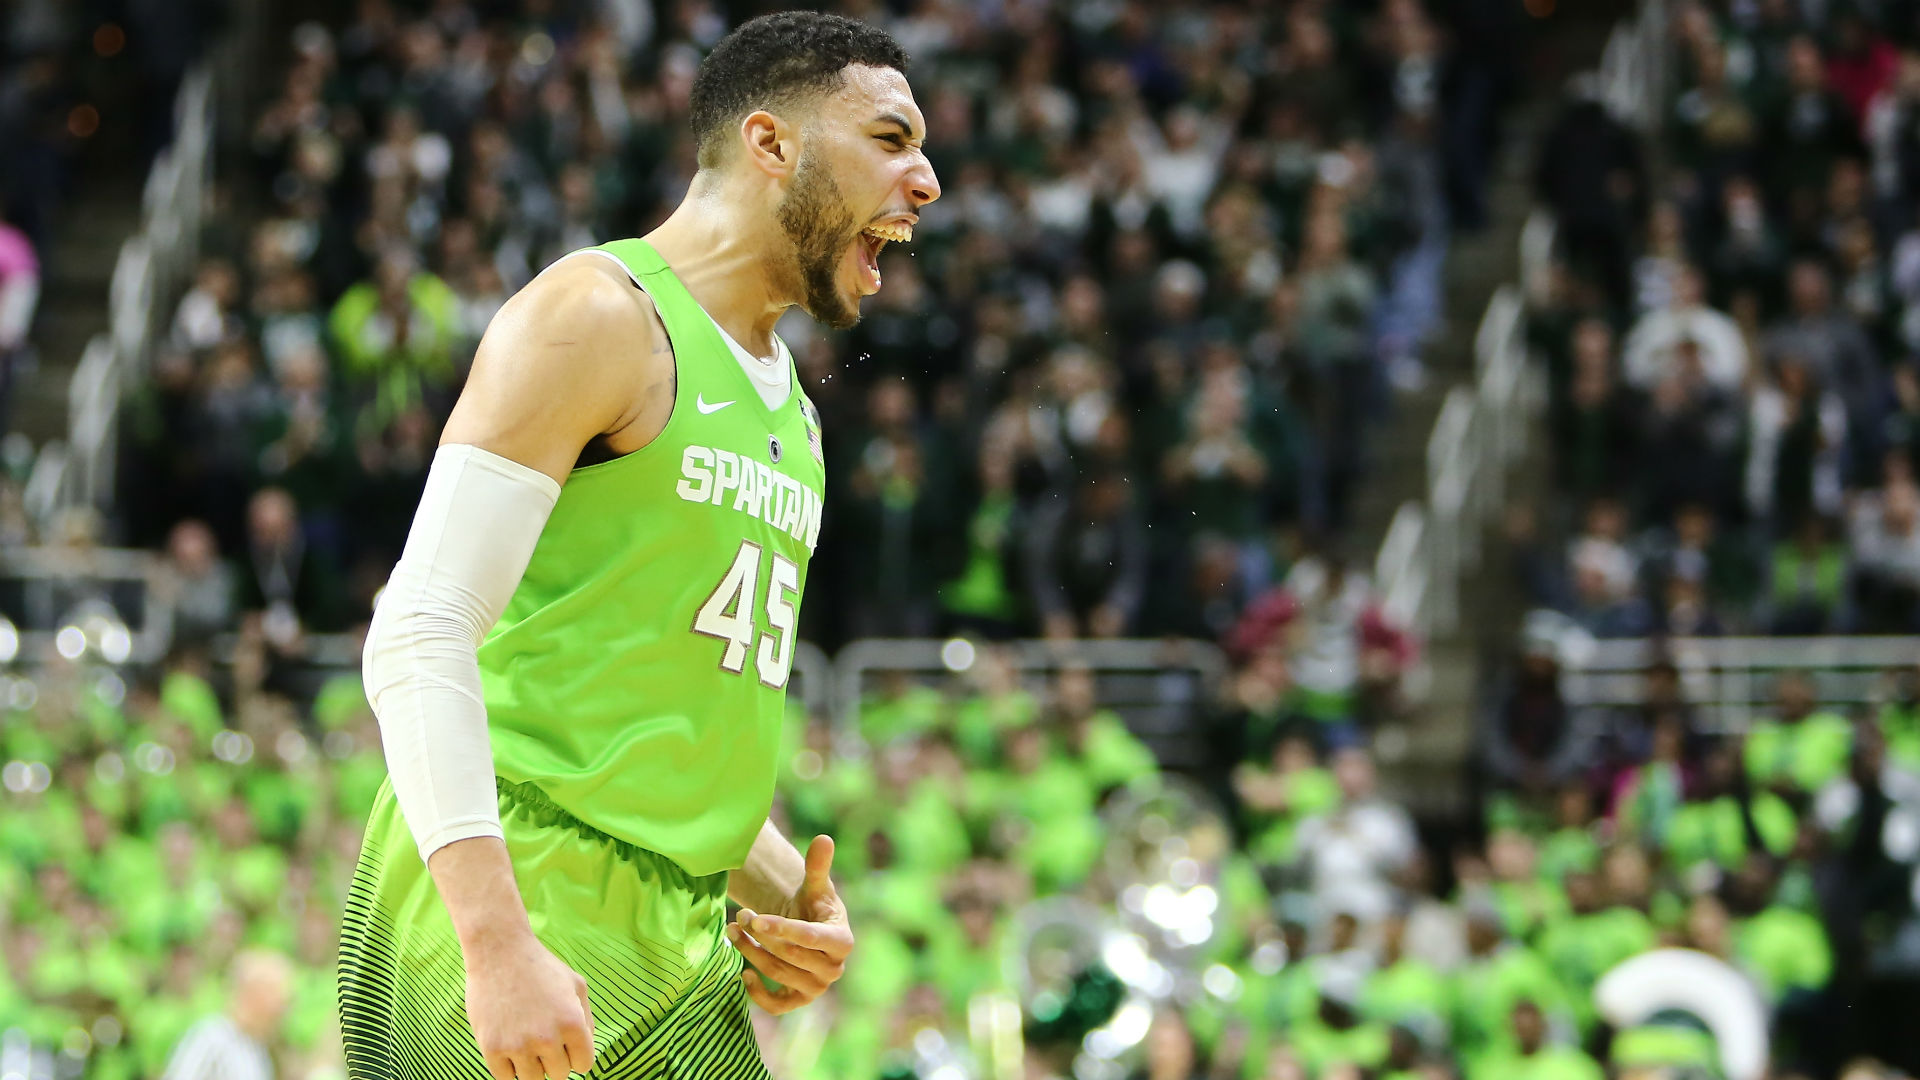 ... Denzel Valentine Ftr Getty 012816